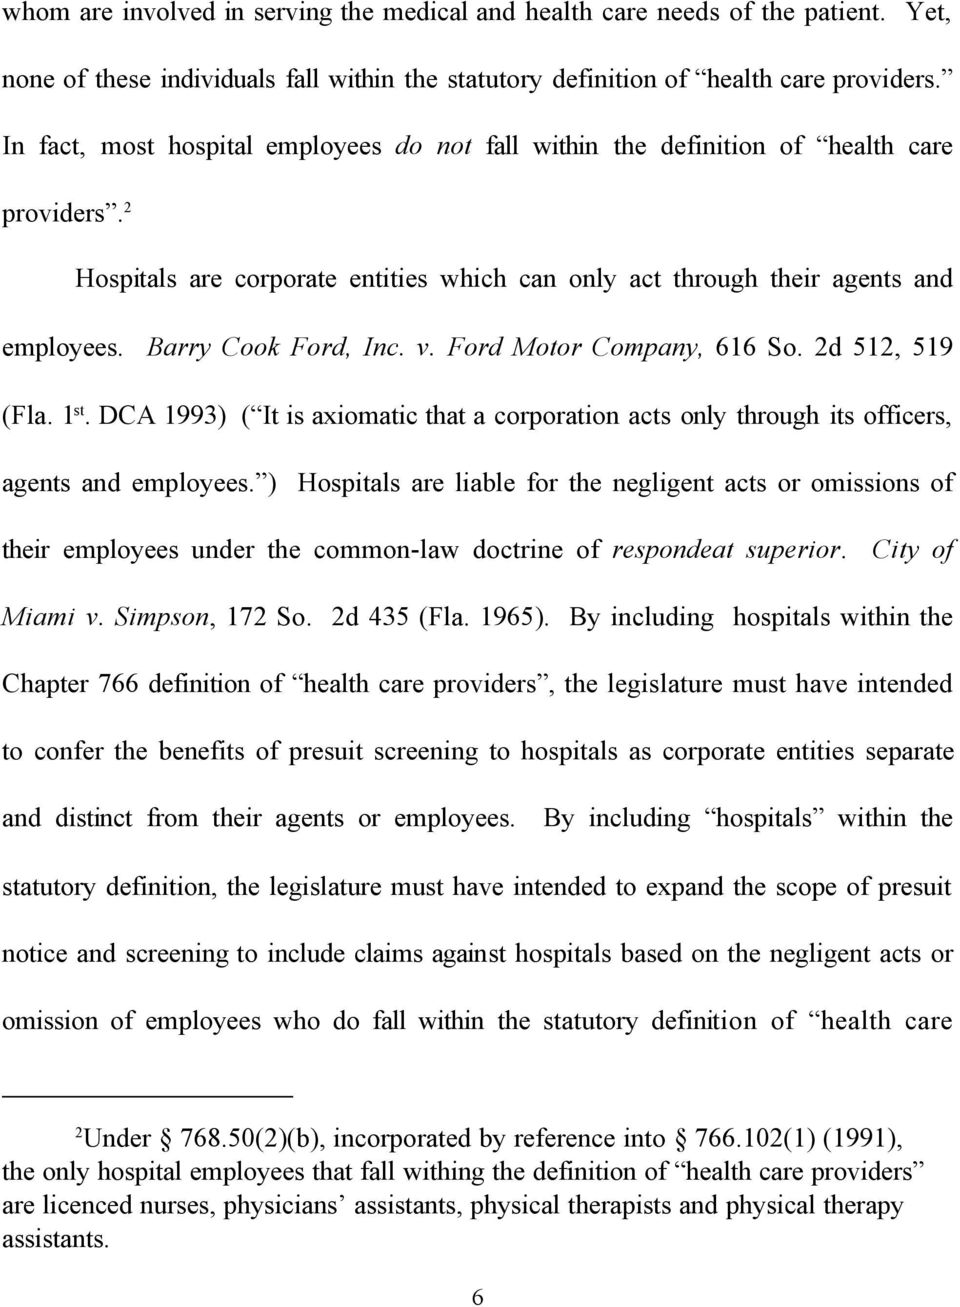 Barry Cook Ford, Inc. v. Ford Motor Company, 616 So. 2d 512, 519 (Fla. 1 st. DCA 1993) ( It is axiomatic that a corporation acts only through its officers, agents and employees.